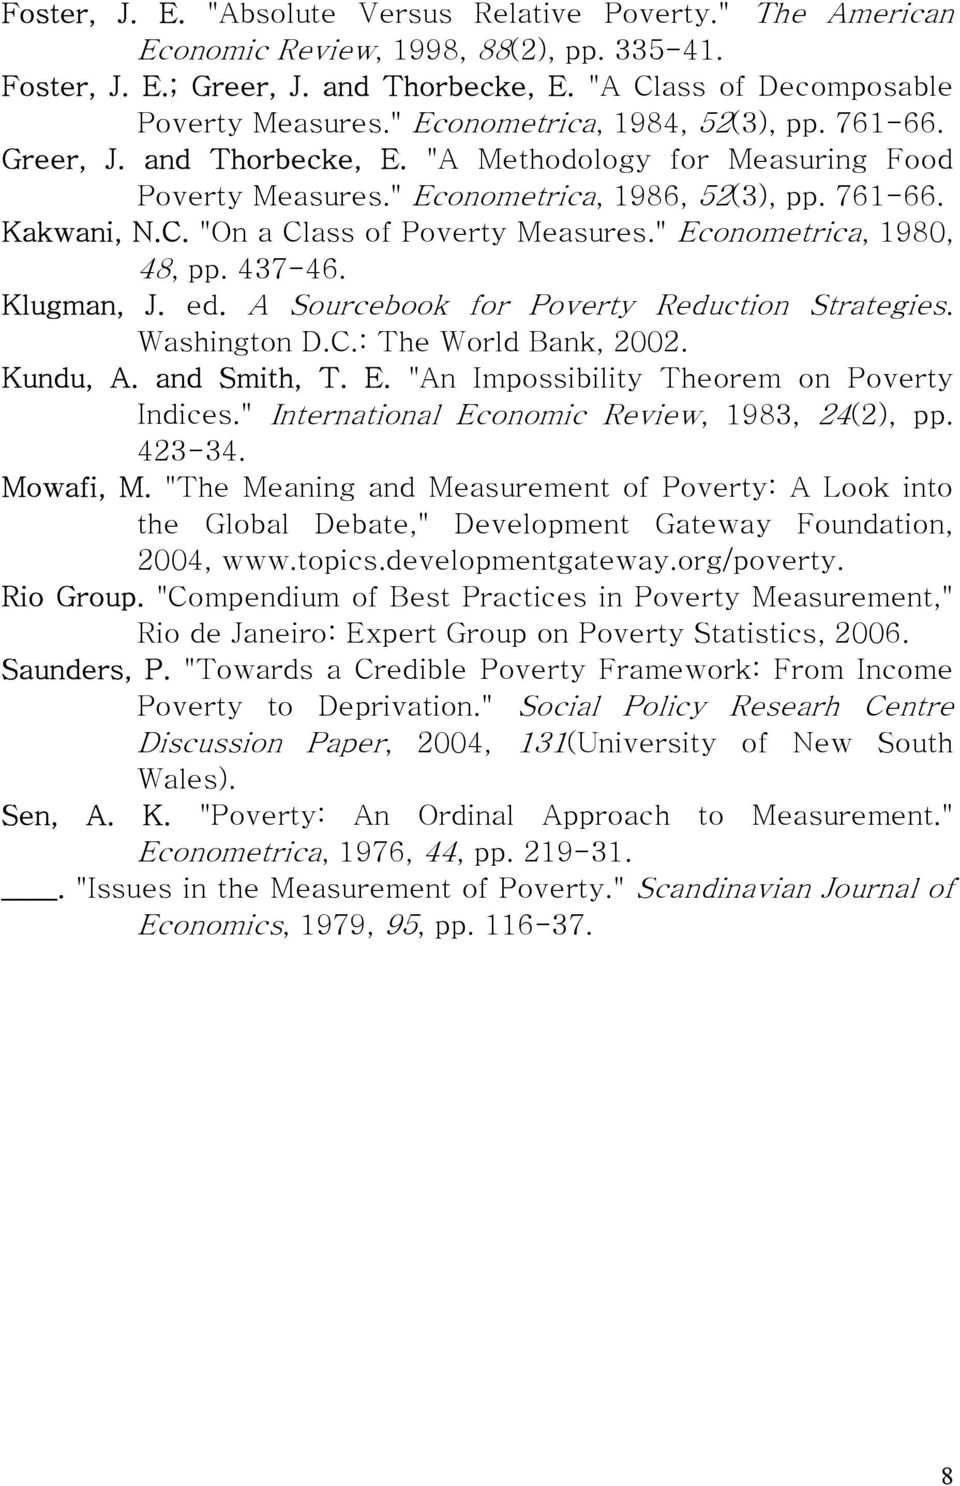 """On a Class of Poverty Measures."" Econometrica, 1980, 48, pp. 437-46. Klugman, J. ed. A Sourcebook for Poverty Reduction Strategies. Washington D.C.: The World Bank, 2002. Kundu, A. and Smith, T. E. ""An Impossibility Theorem on Poverty Indices."